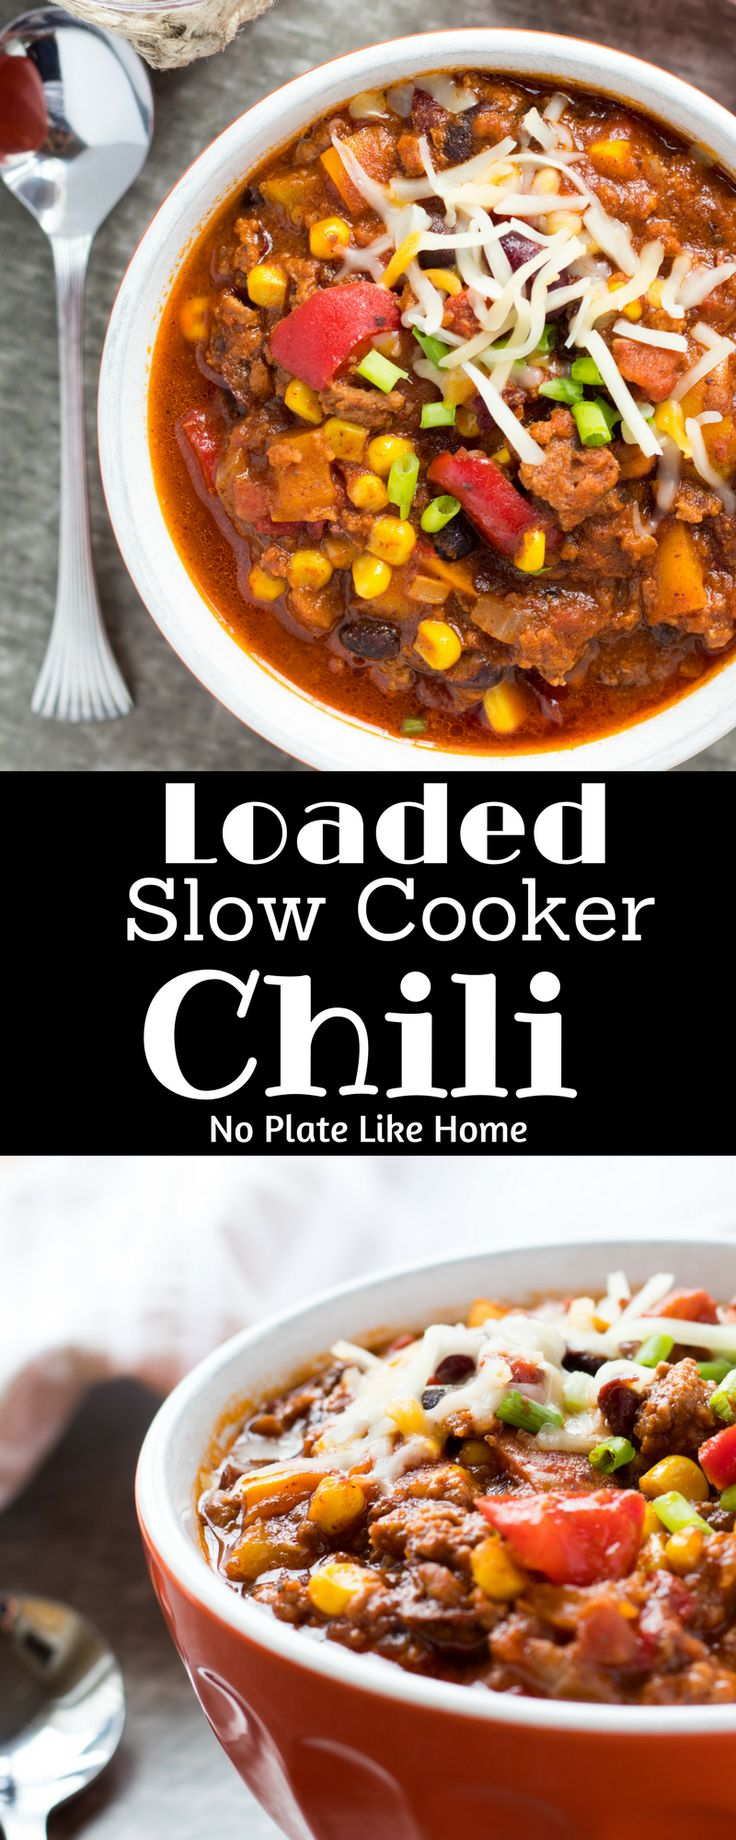 This Loaded Slow Cooker Santa Fe Chili is loaded with ground beef, beans, corn, rainbow bell peppers and spices. Sweetened with honey. Tasty game day food!